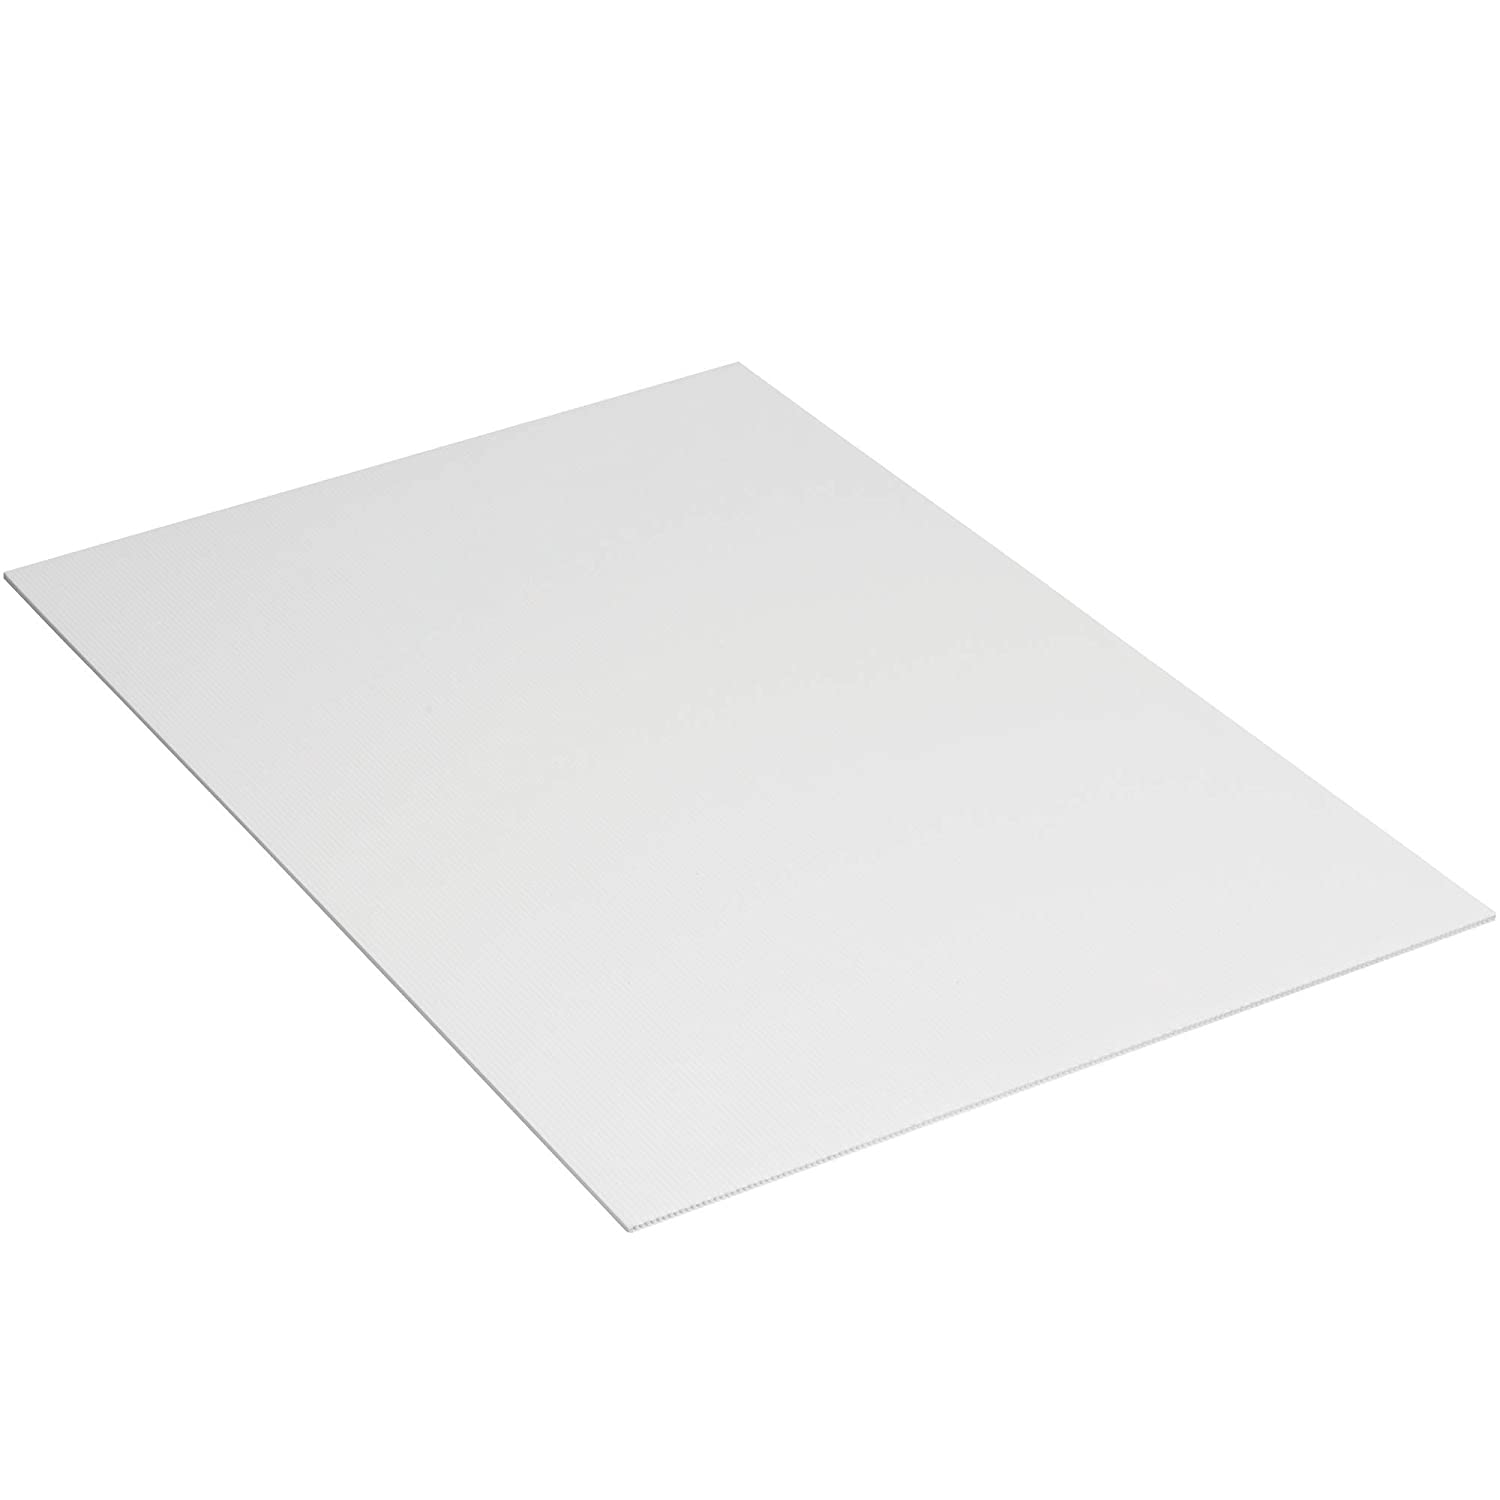 Top Pack Now free shipping Supply Plastic Sheets 24